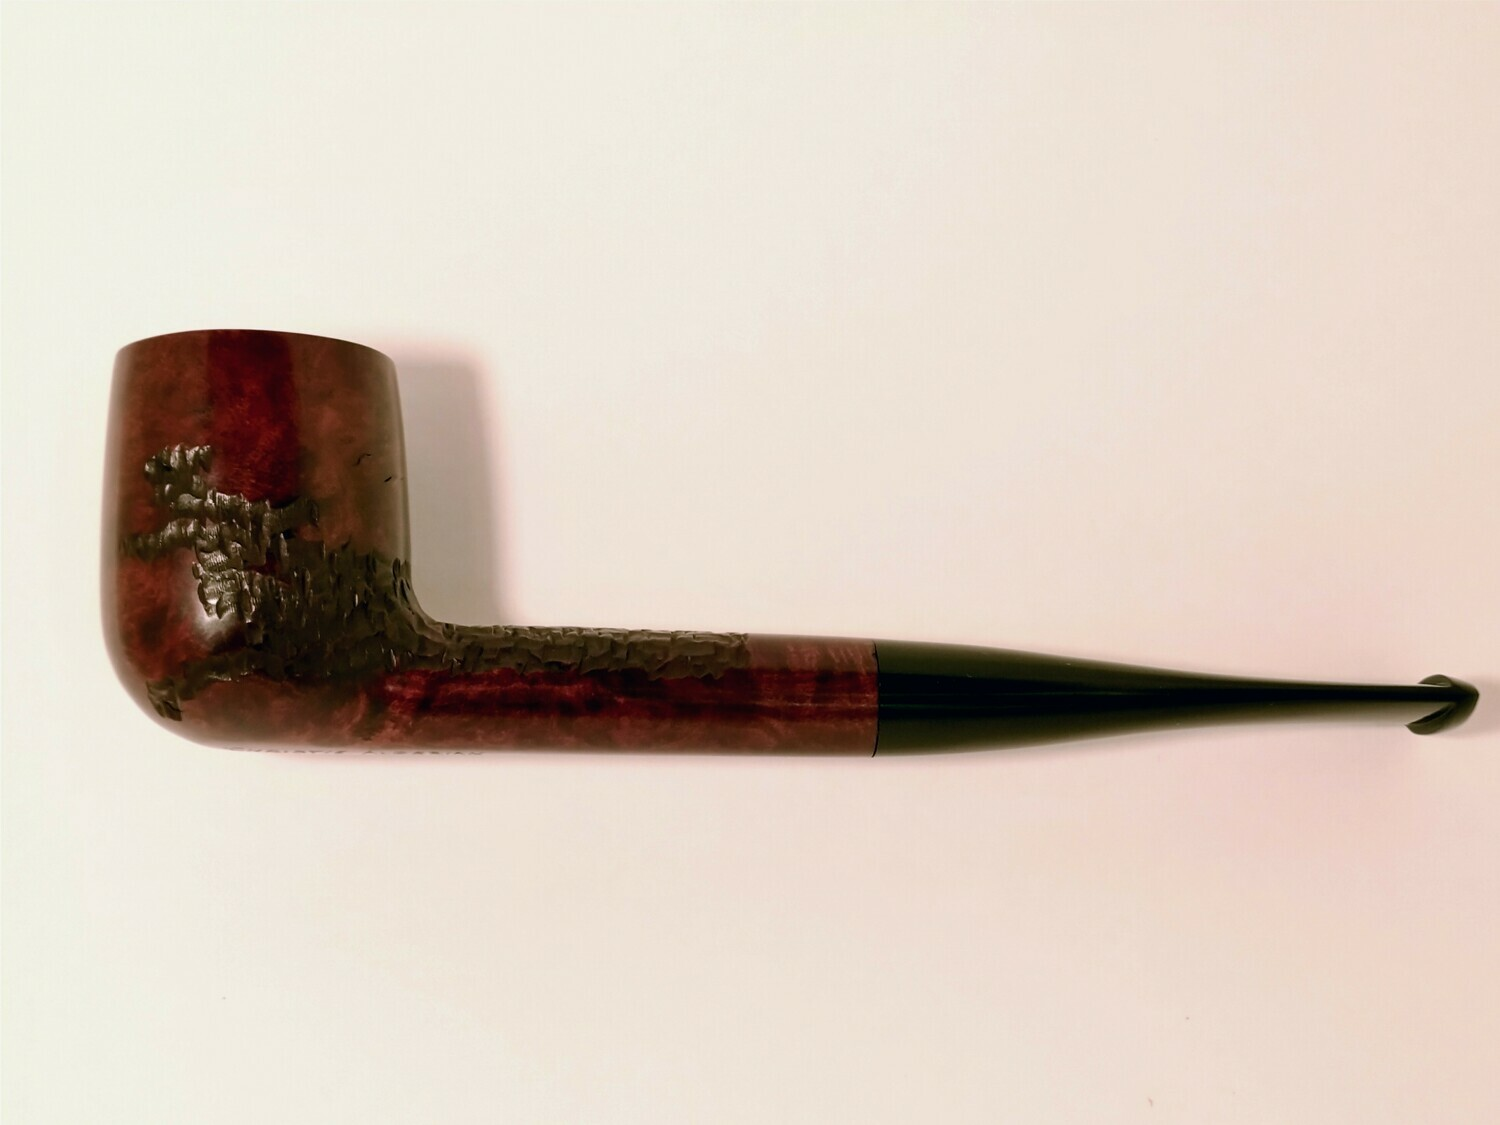 Algerian Rustic Billiard